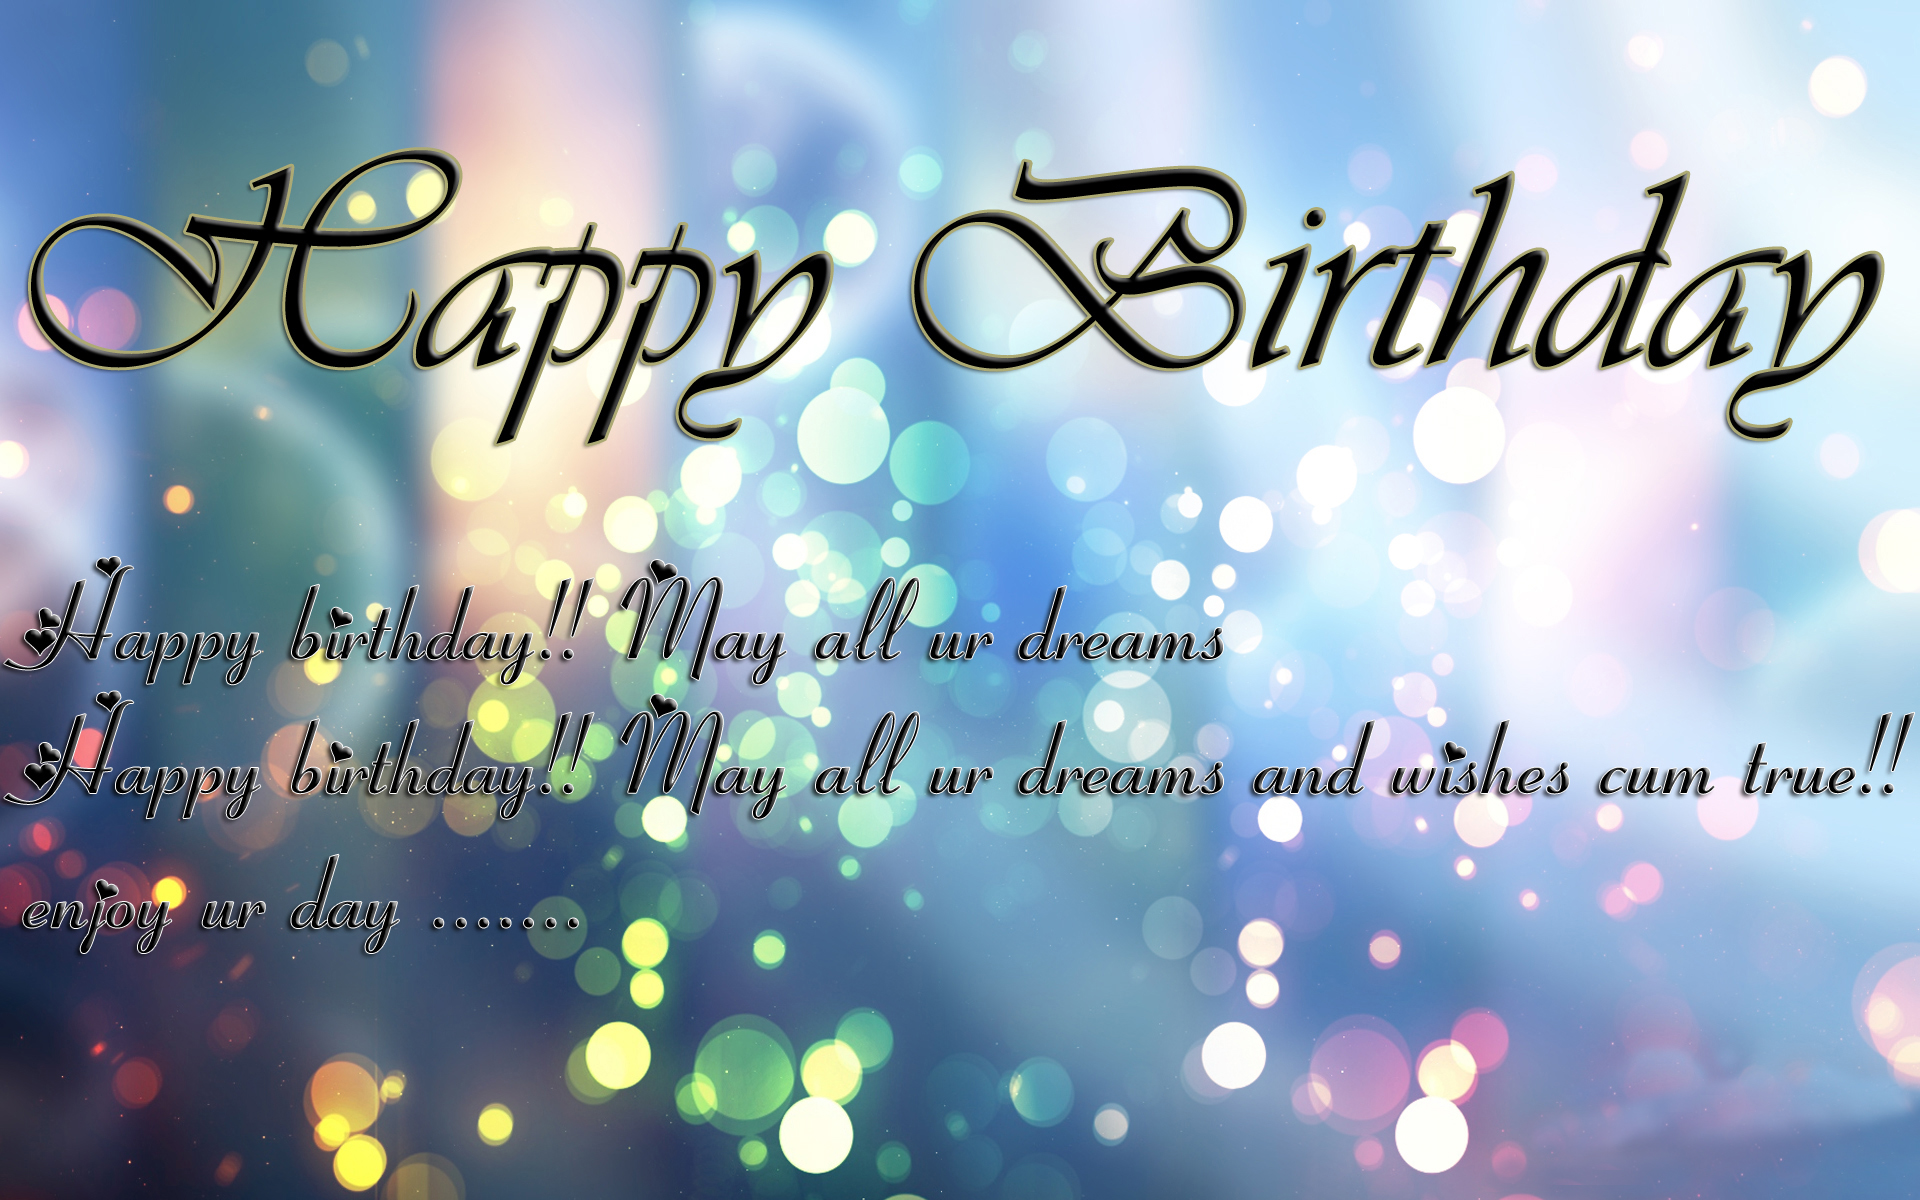 birthday wishes for friend images free download ; Happy-birthday-wishes